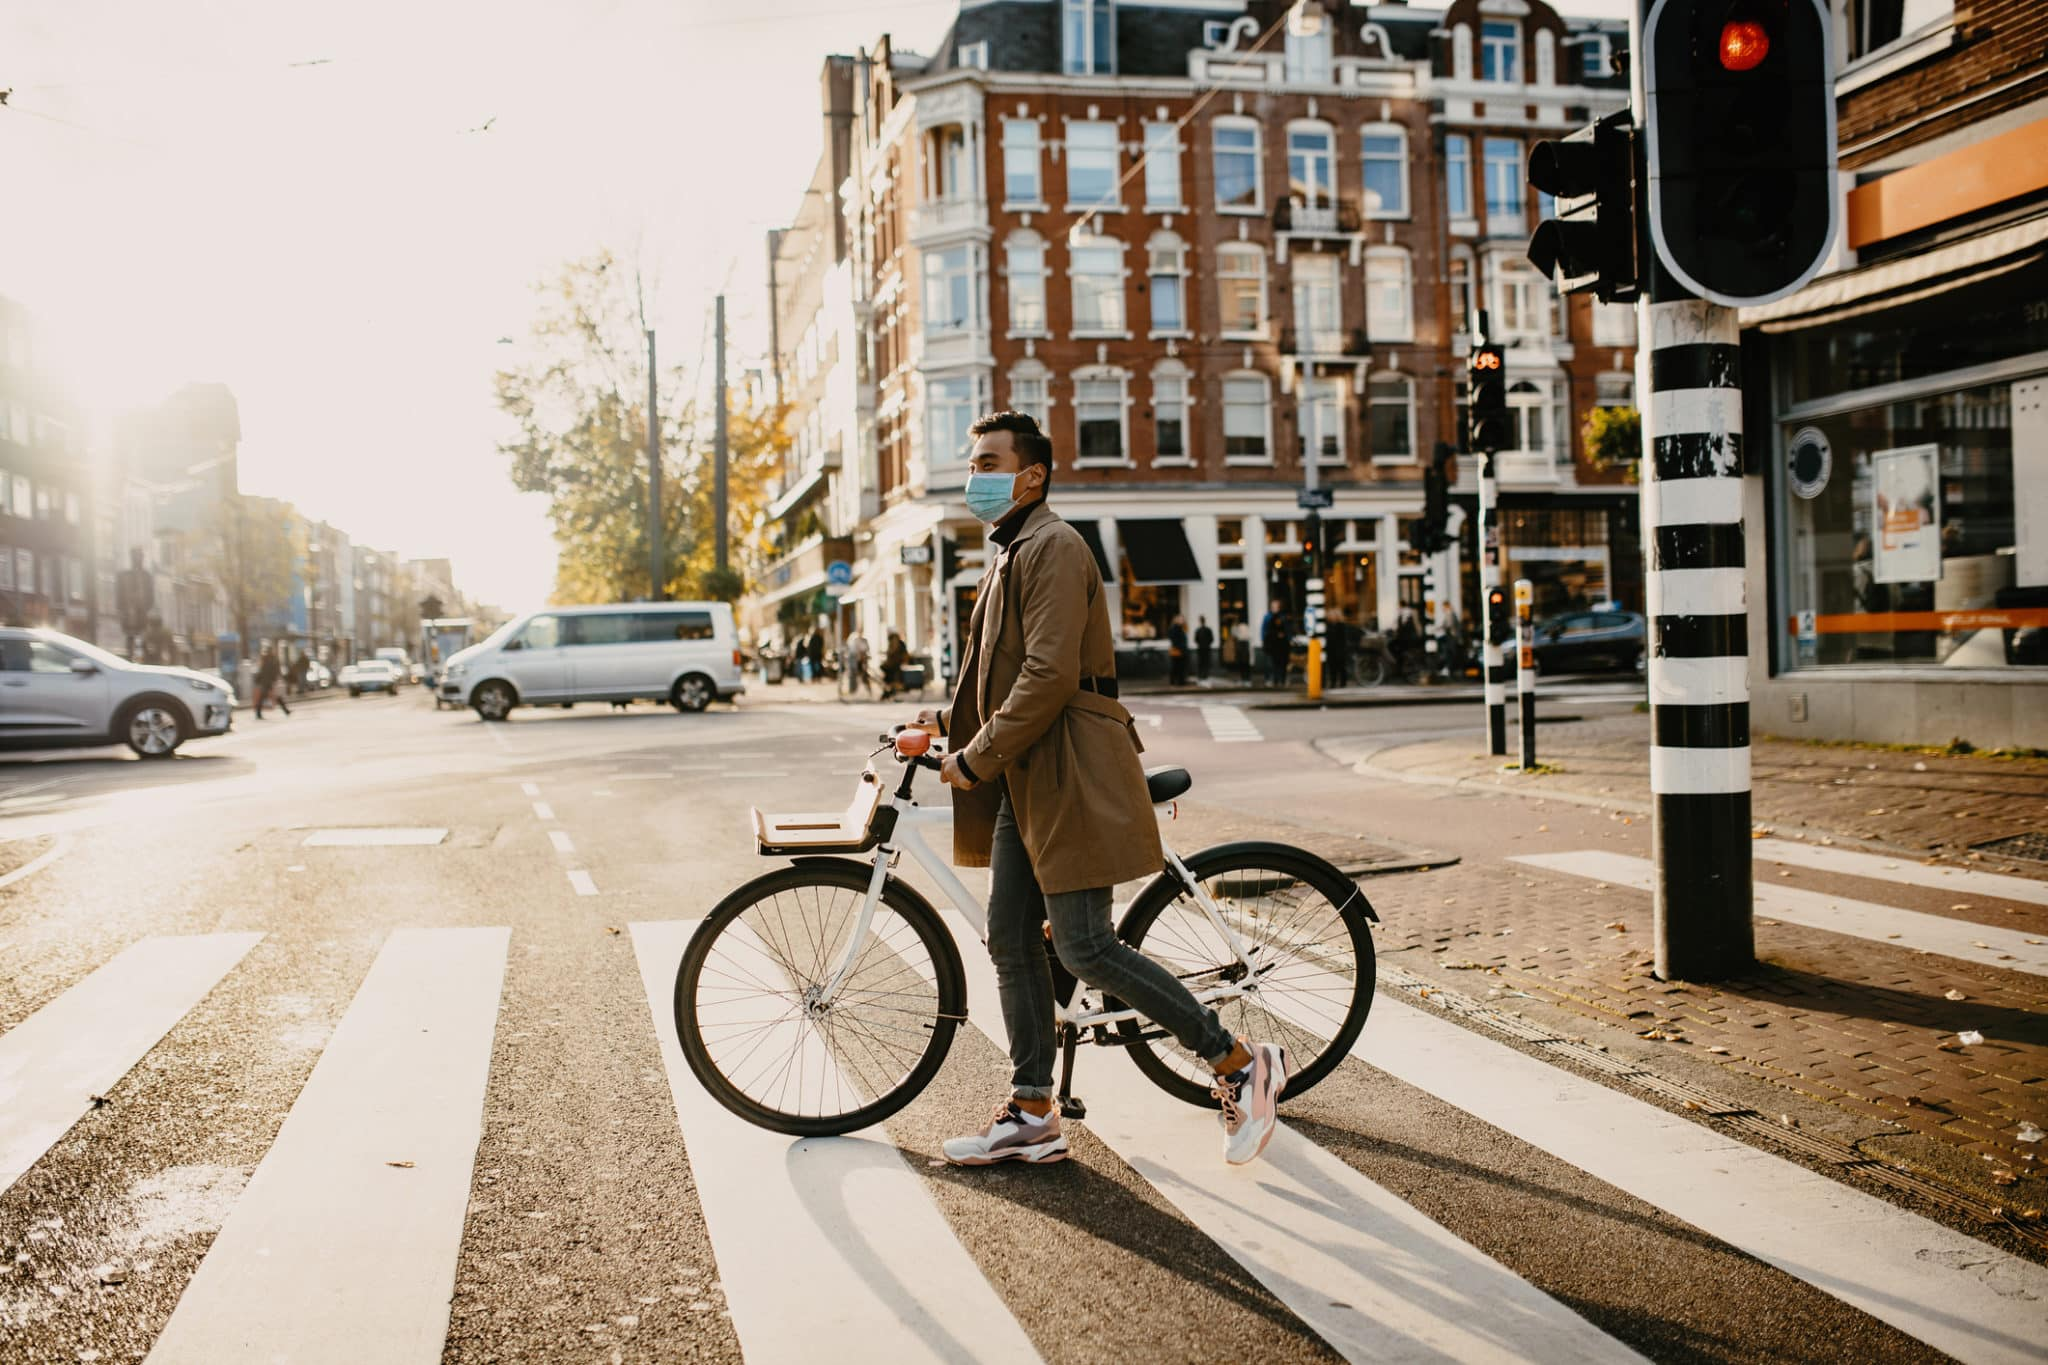 Man with face mask pushing bicycle in the city during coronavirus pandemic lockdown